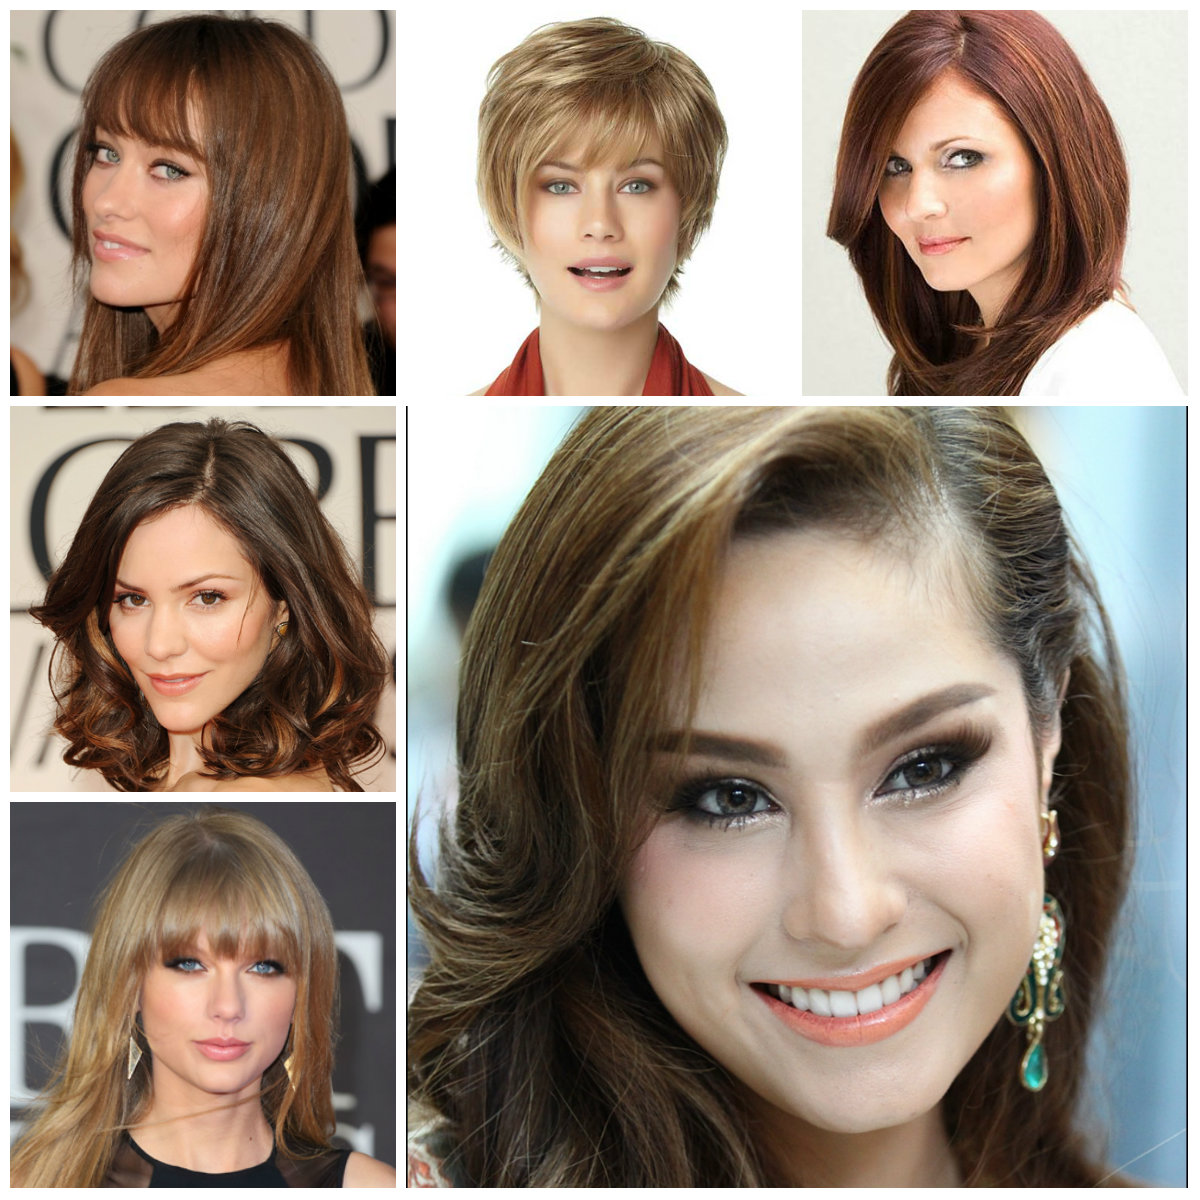 Hairstyles For All Face Shapes 2016